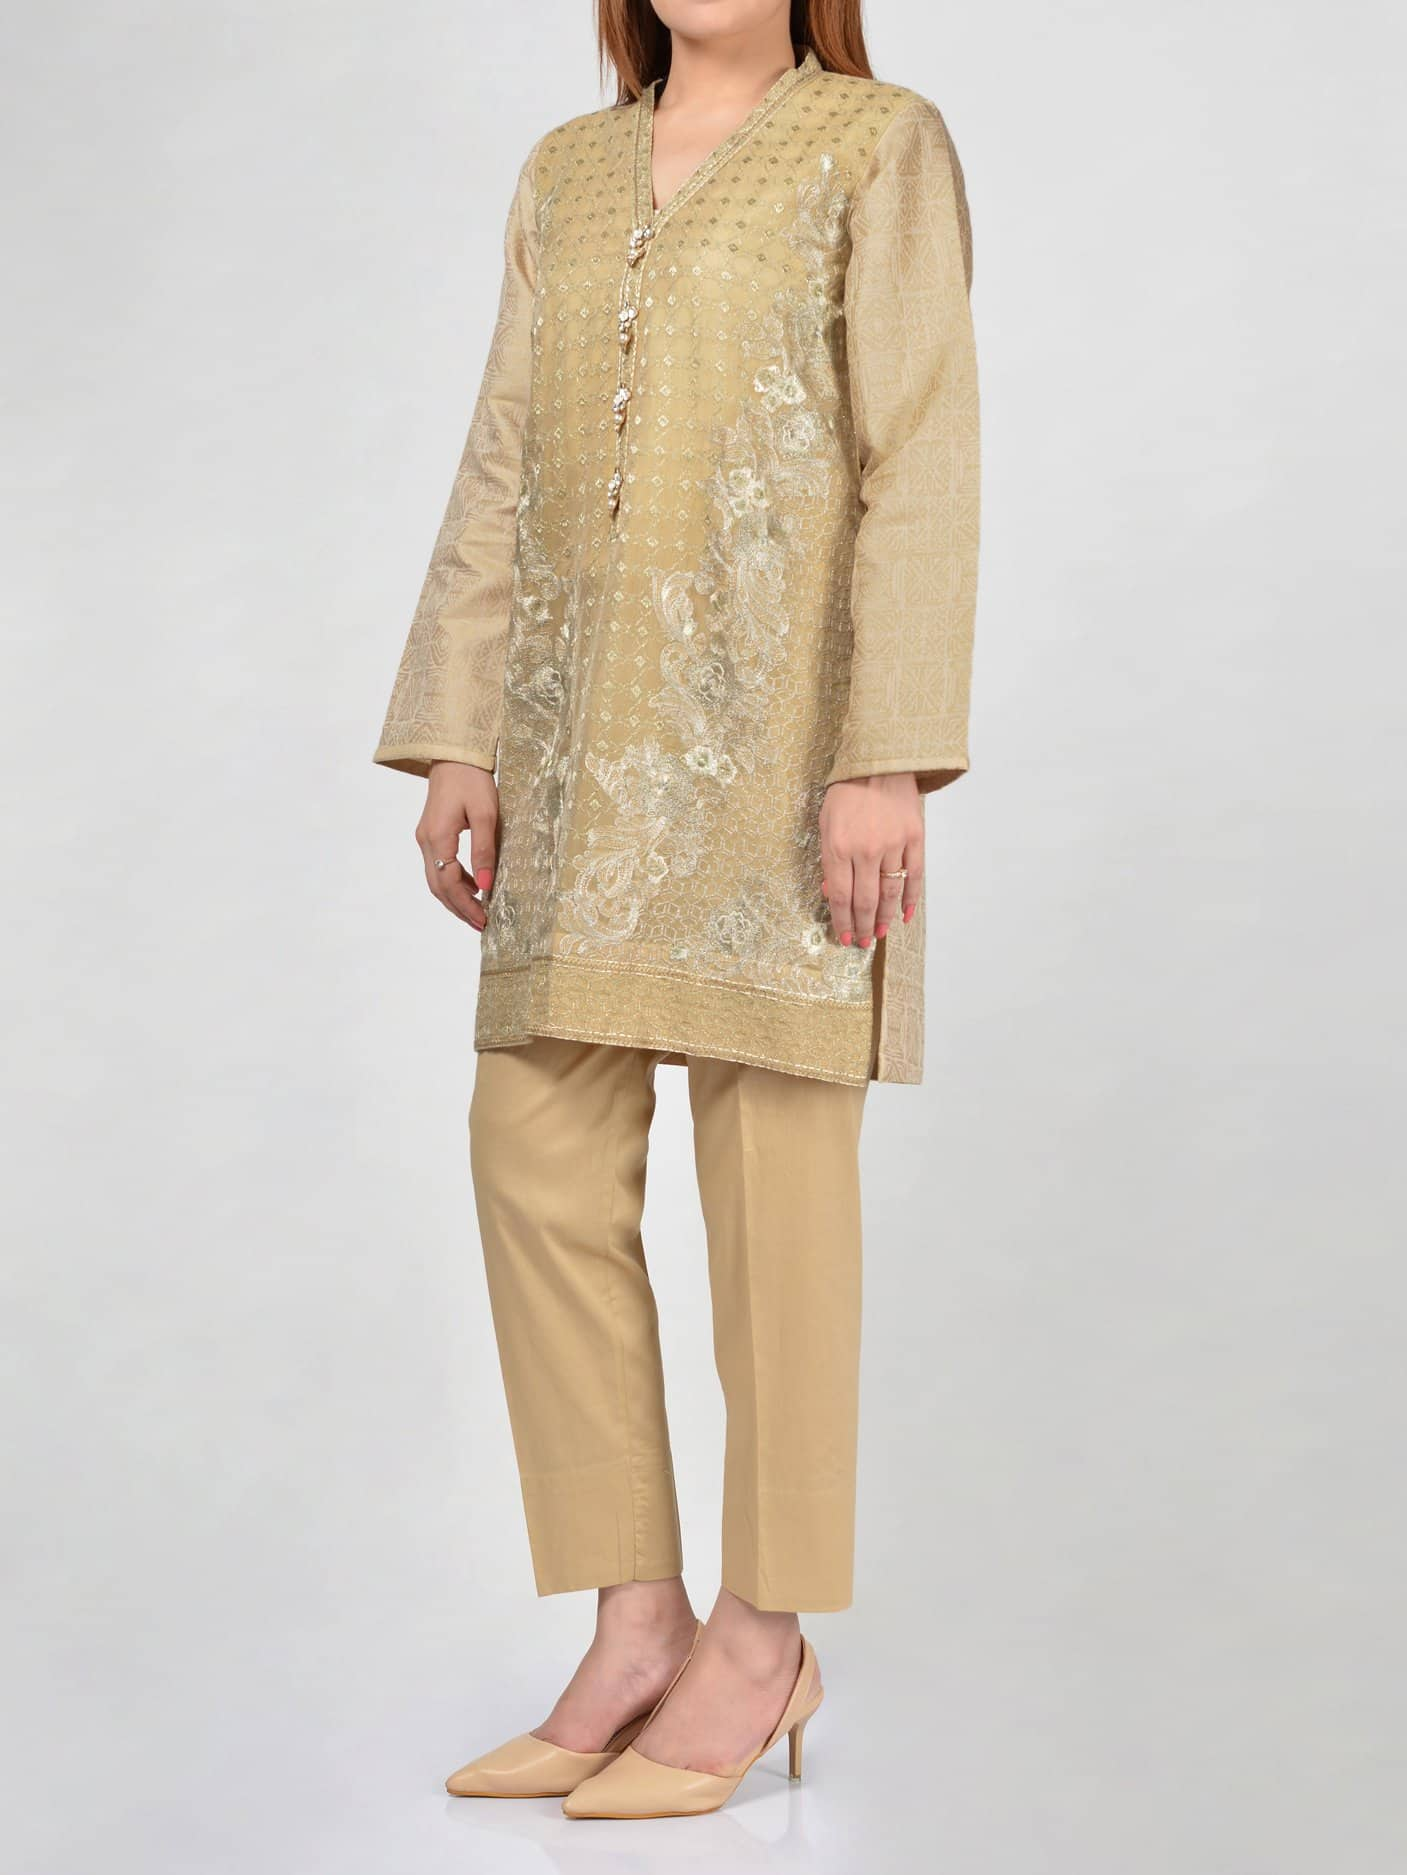 LimeLight Embroidered Jacquard Shirt For Eid